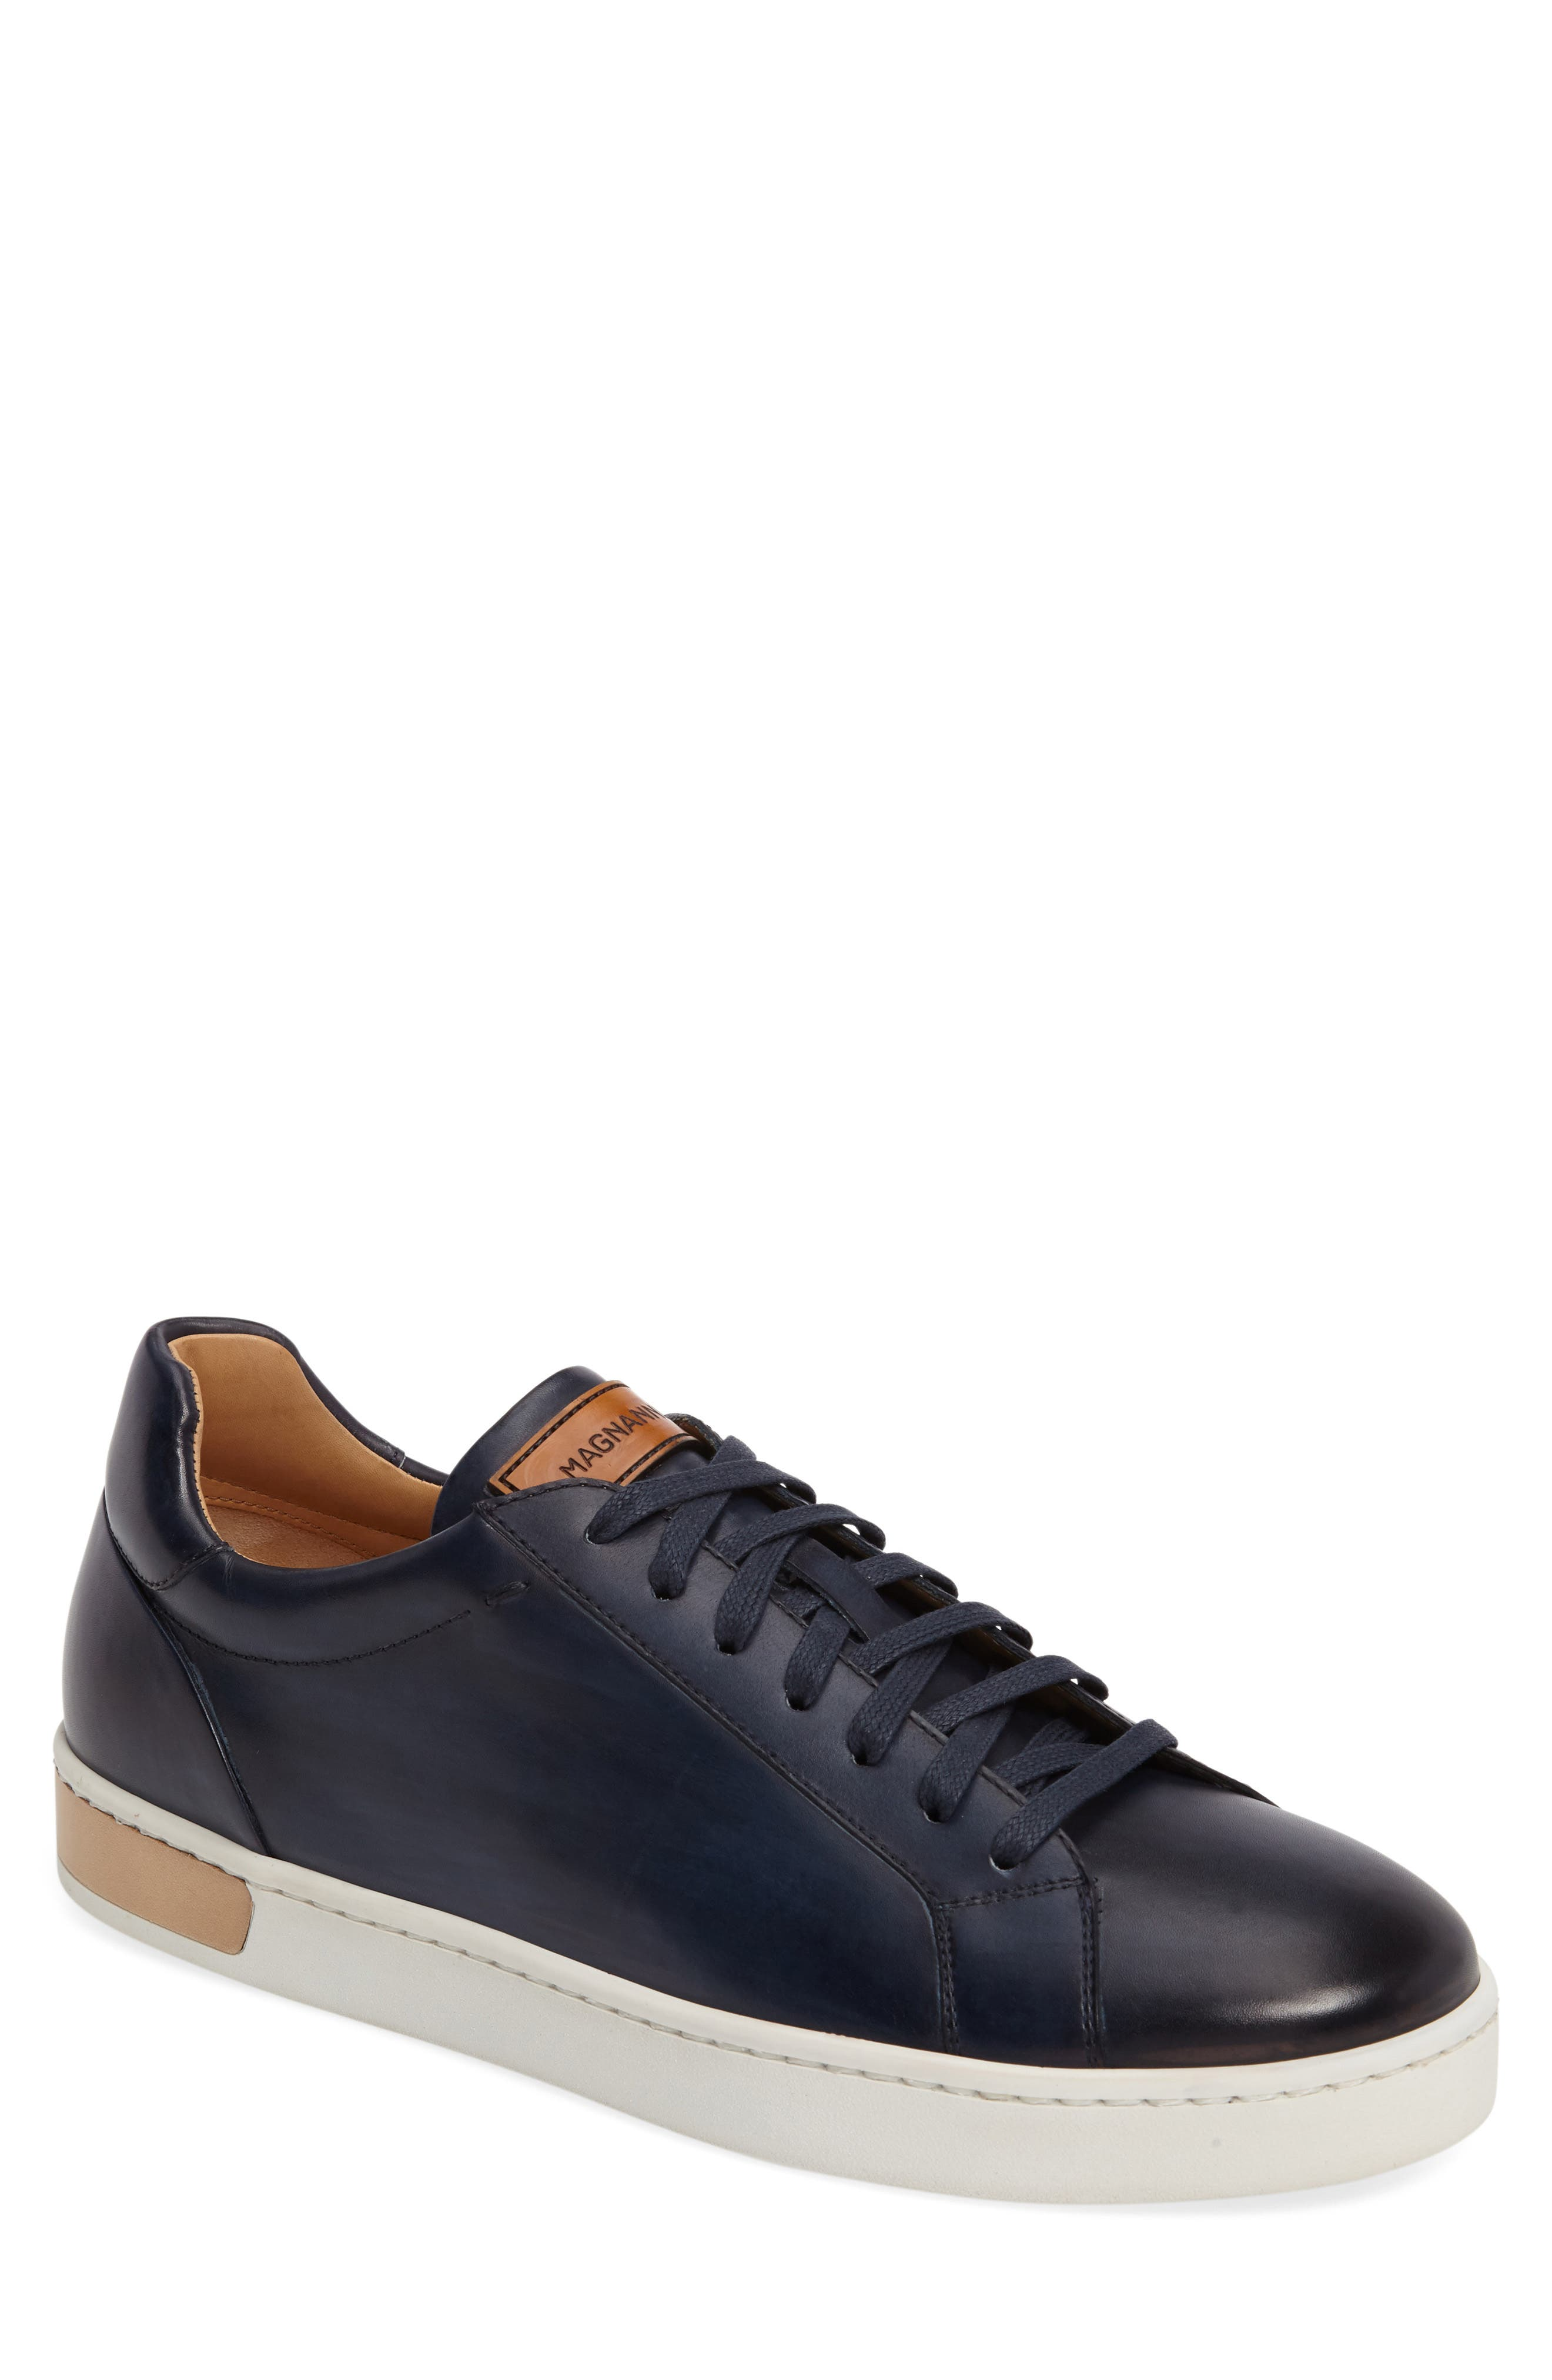 Caballero Sneaker,                         Main,                         color, Blue Leather